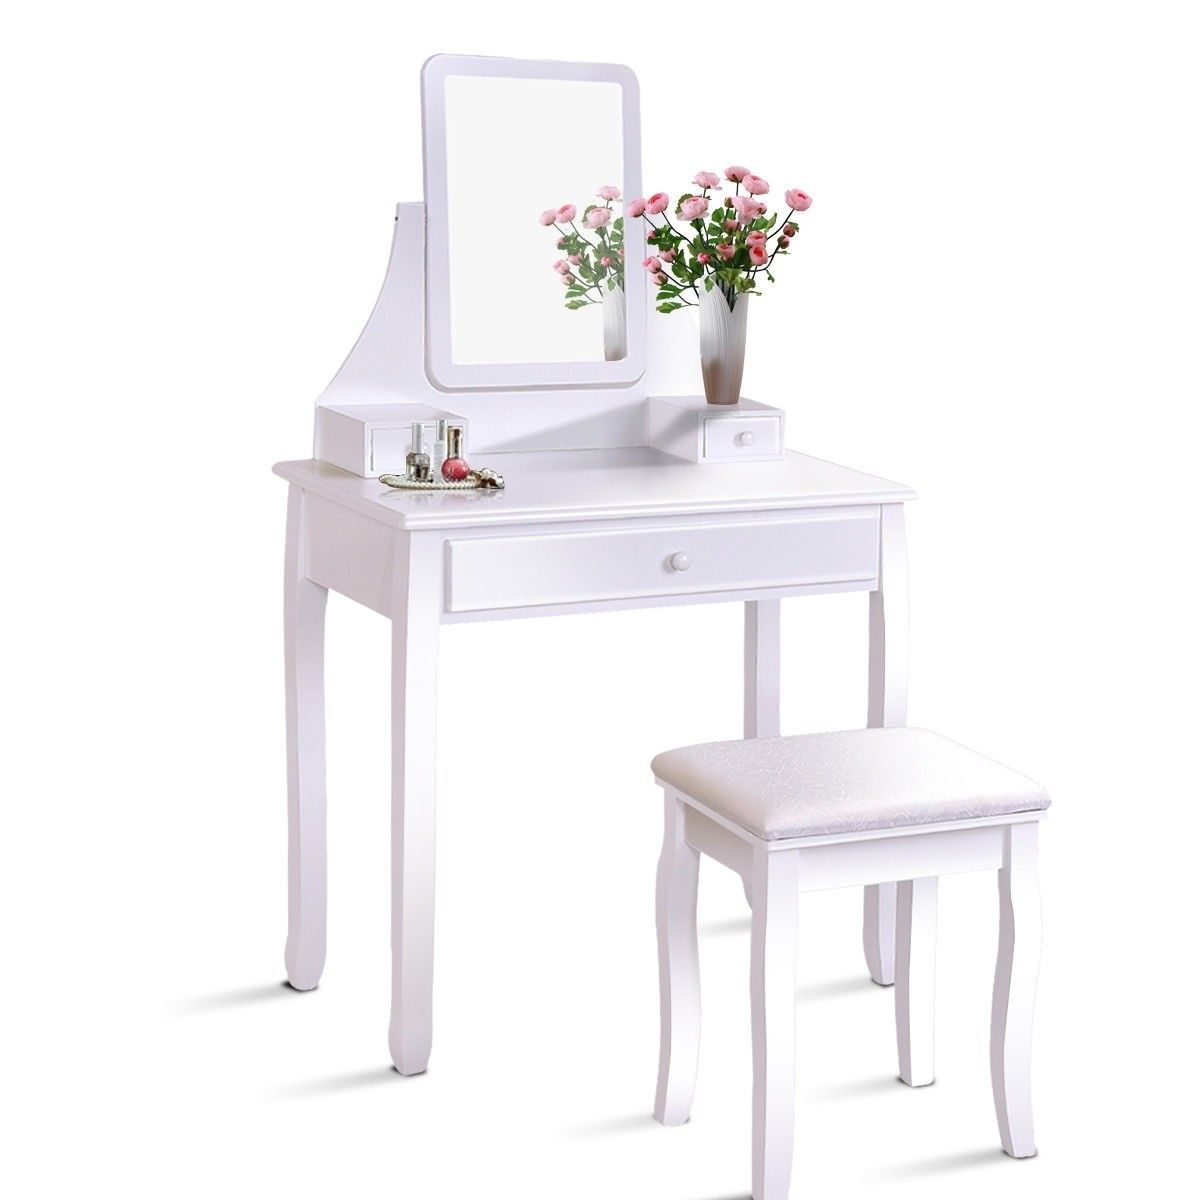 Square Mirrored Vanity Dressing Table Set with 3 Storage